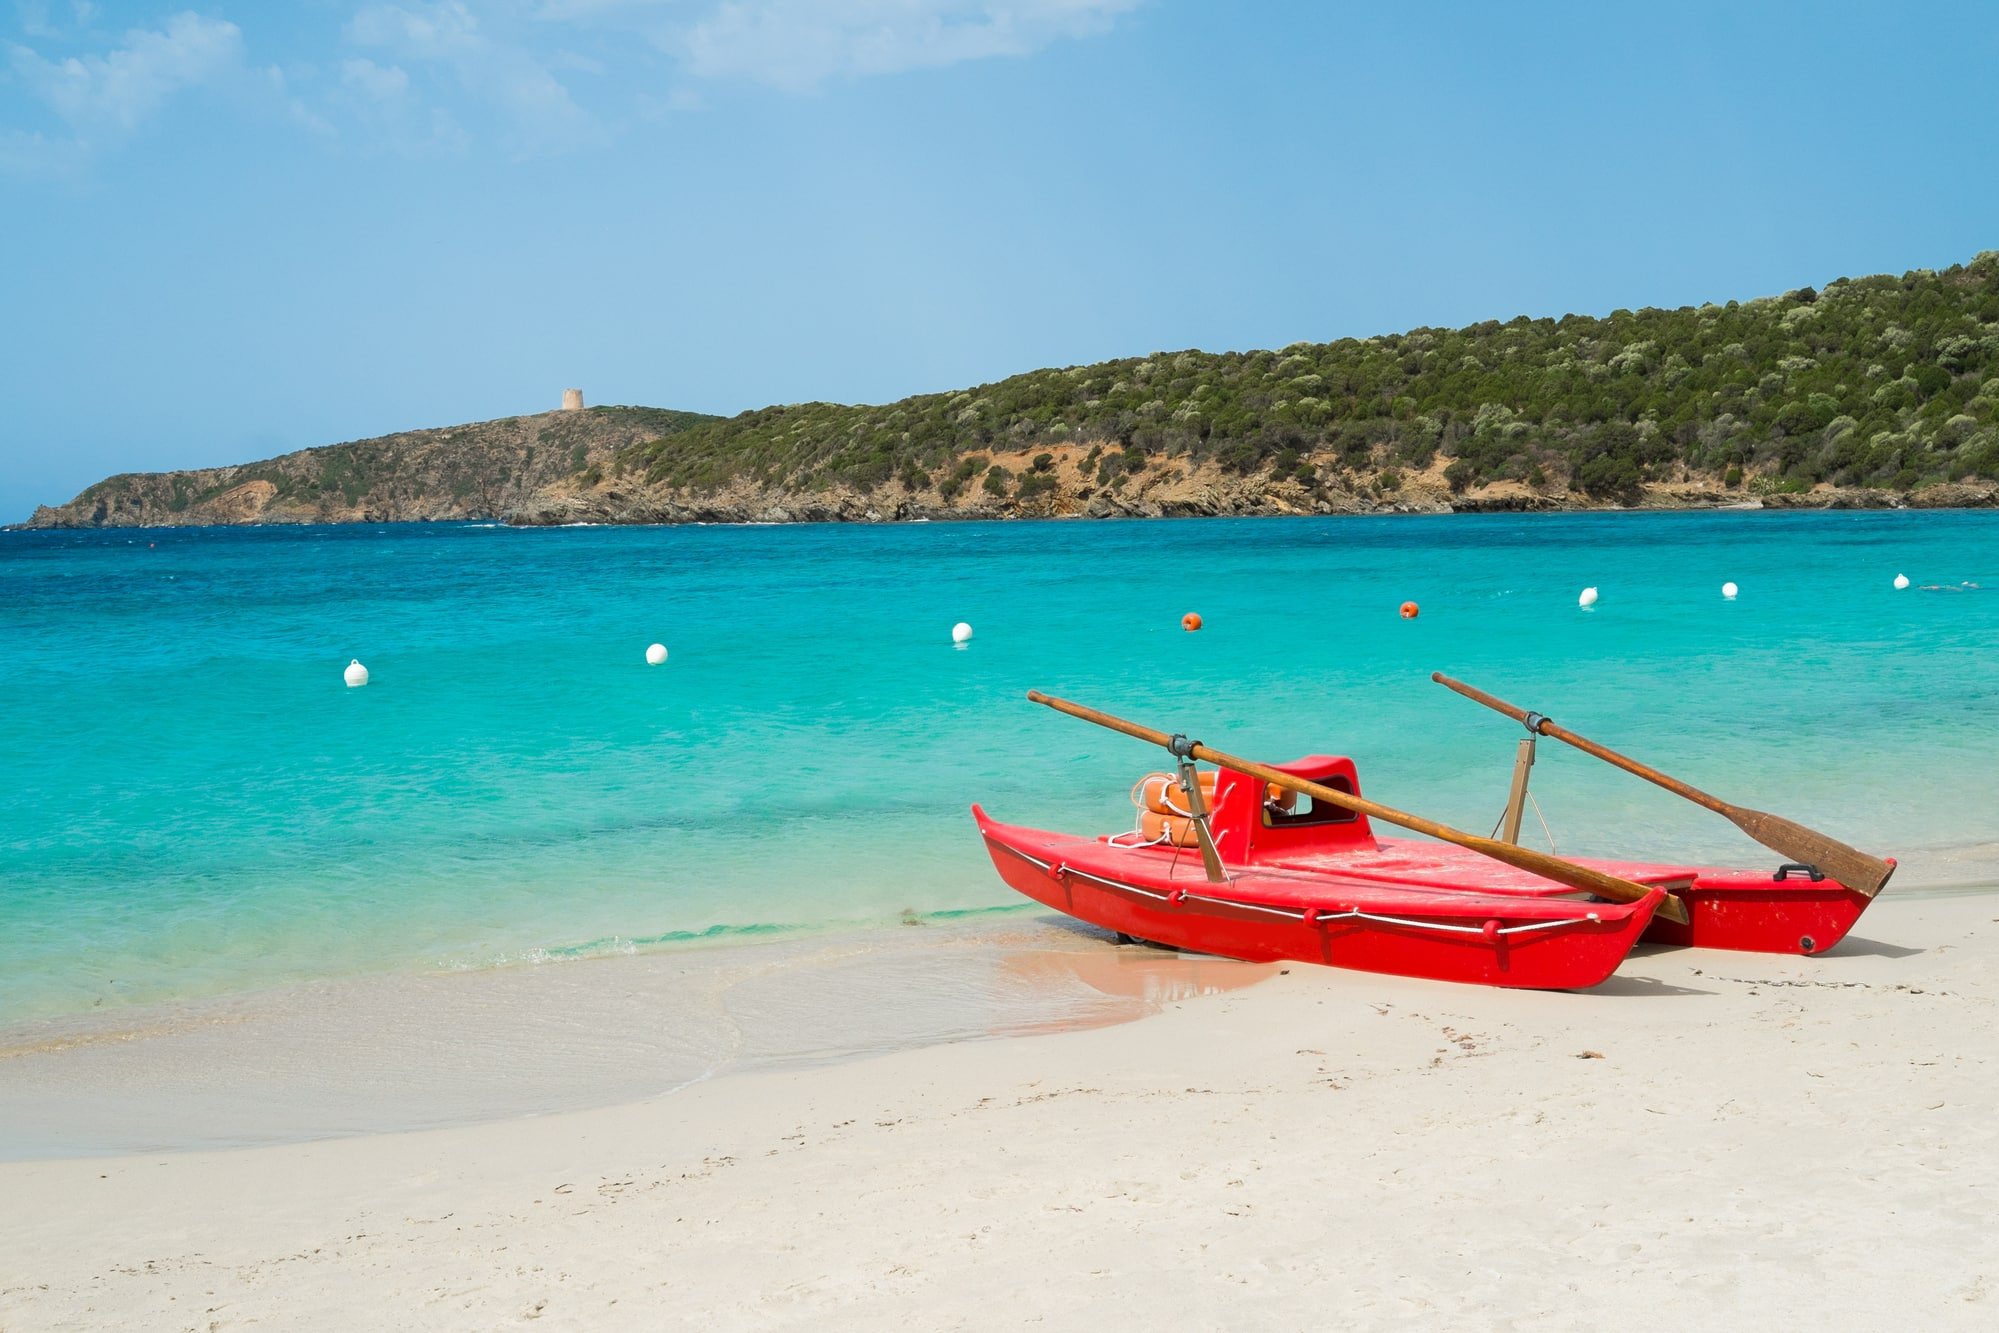 Red rowboat on Tuerredda beach along the coast of Teulada, South Sardinia, Italy